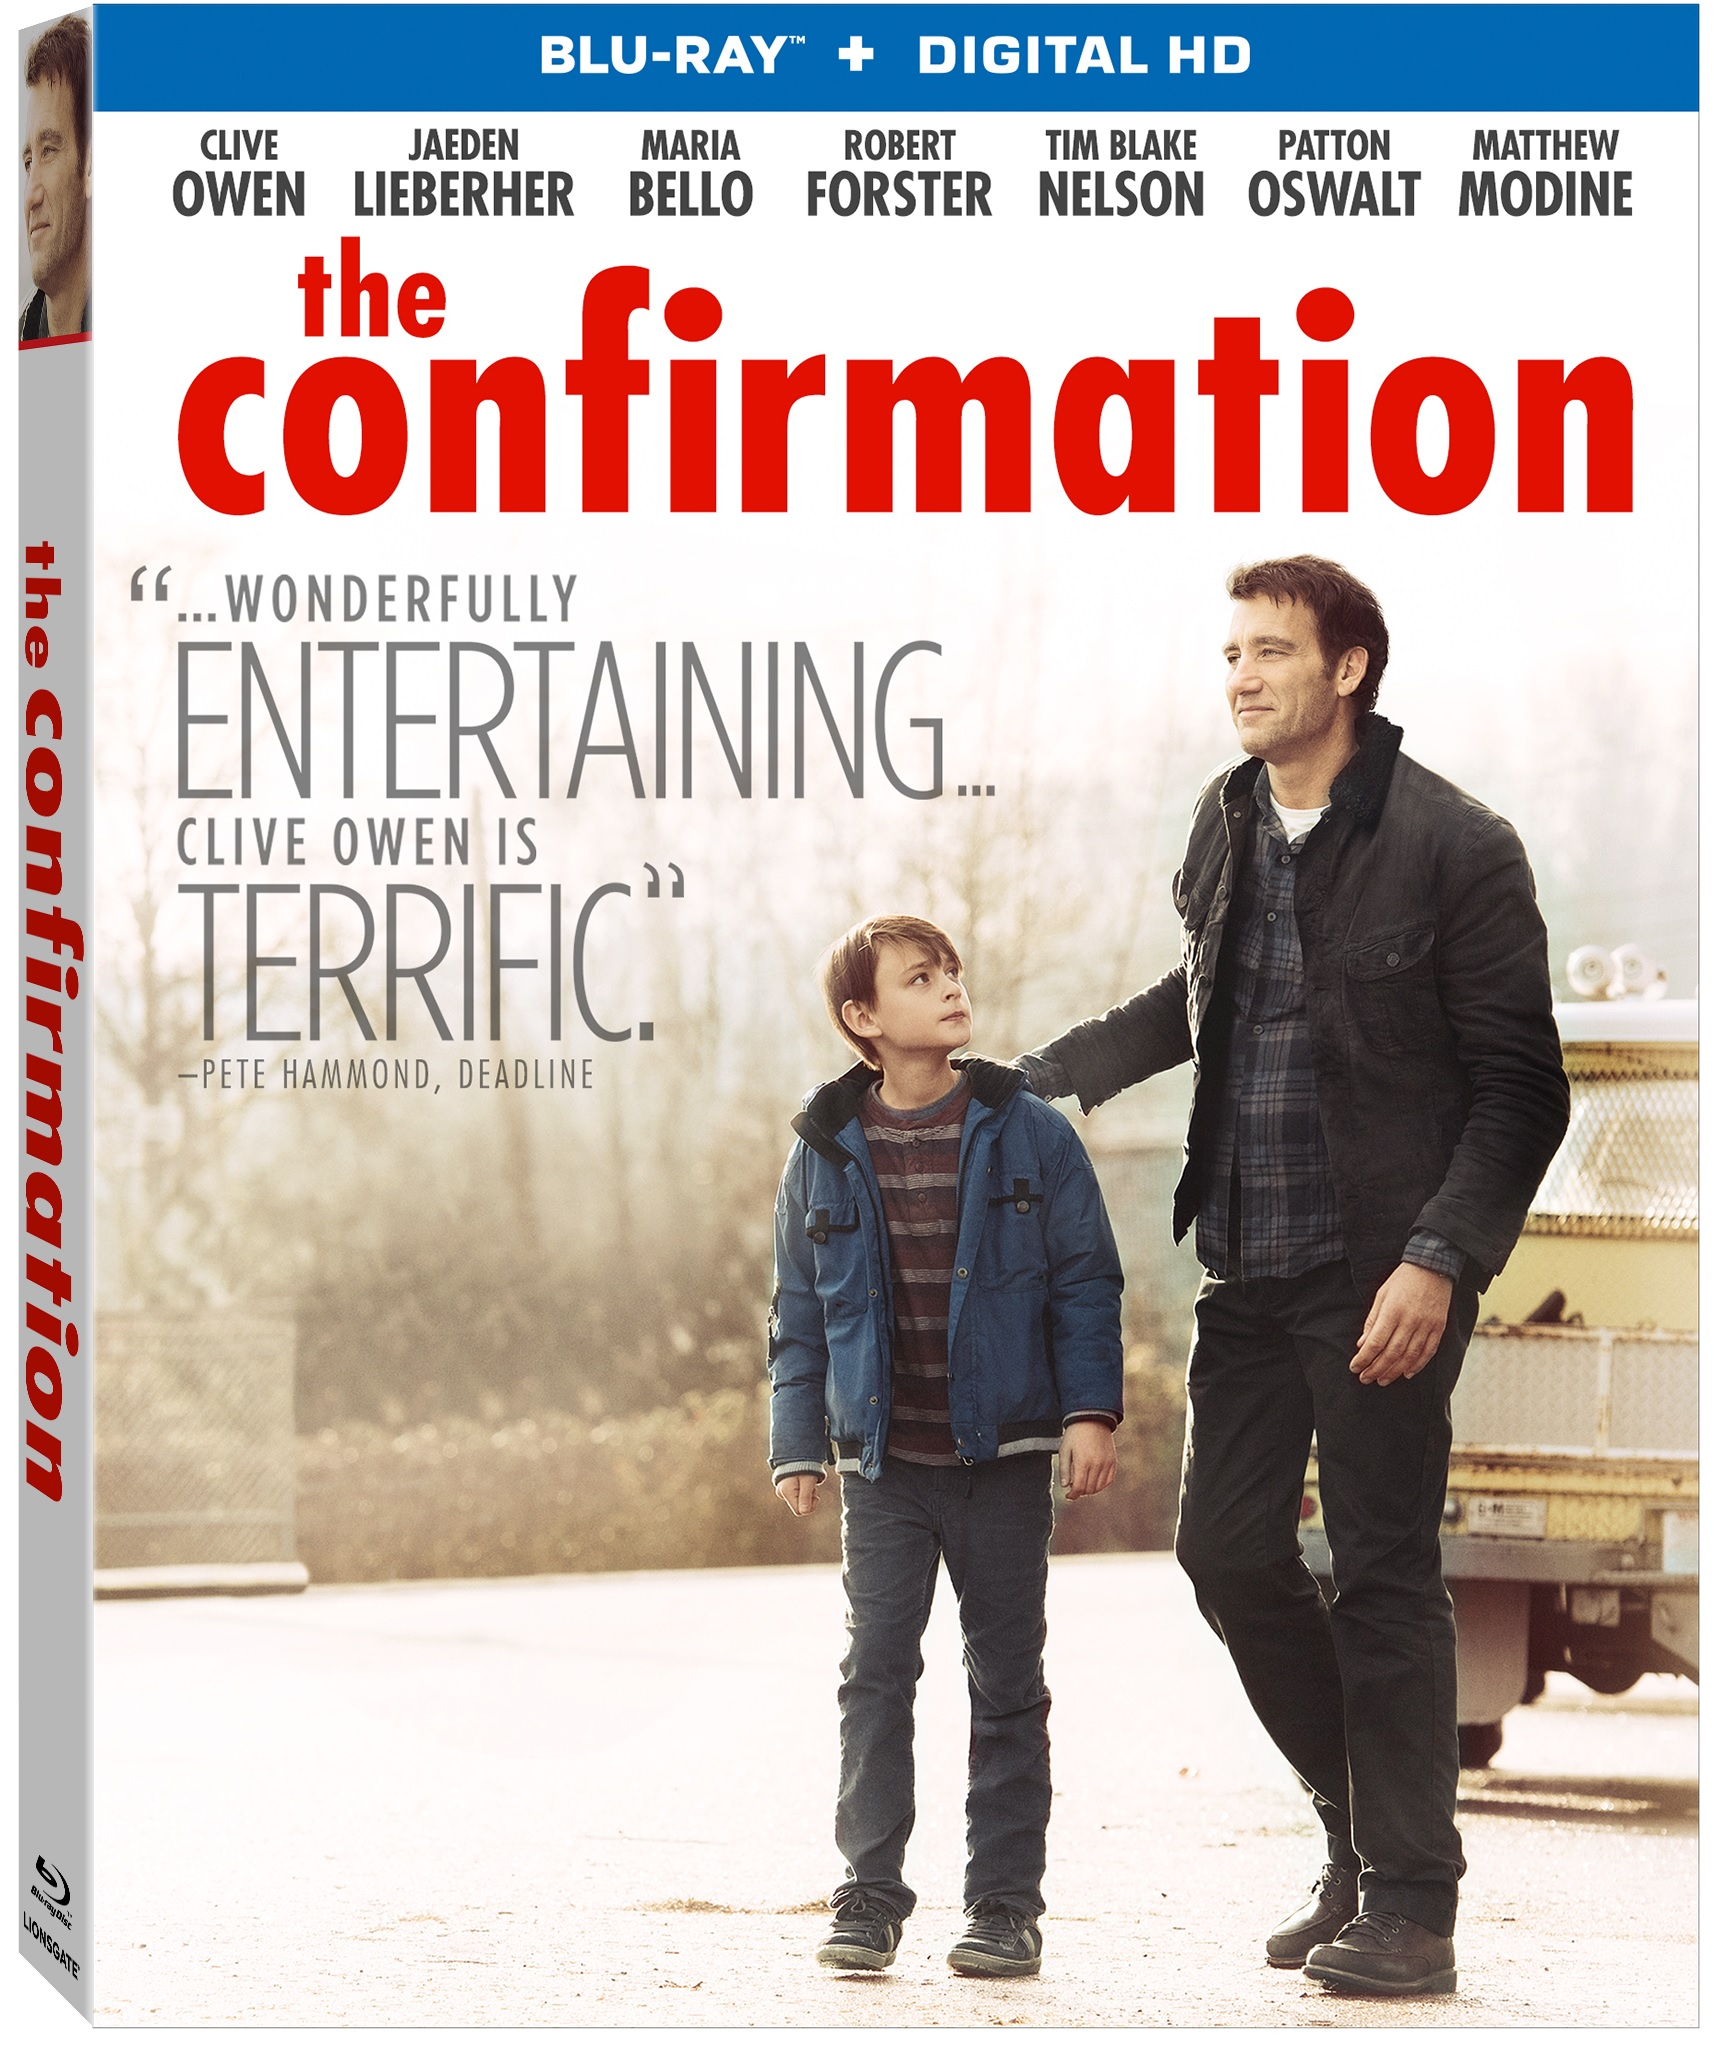 The Confirmation Chronicles Blu-ray